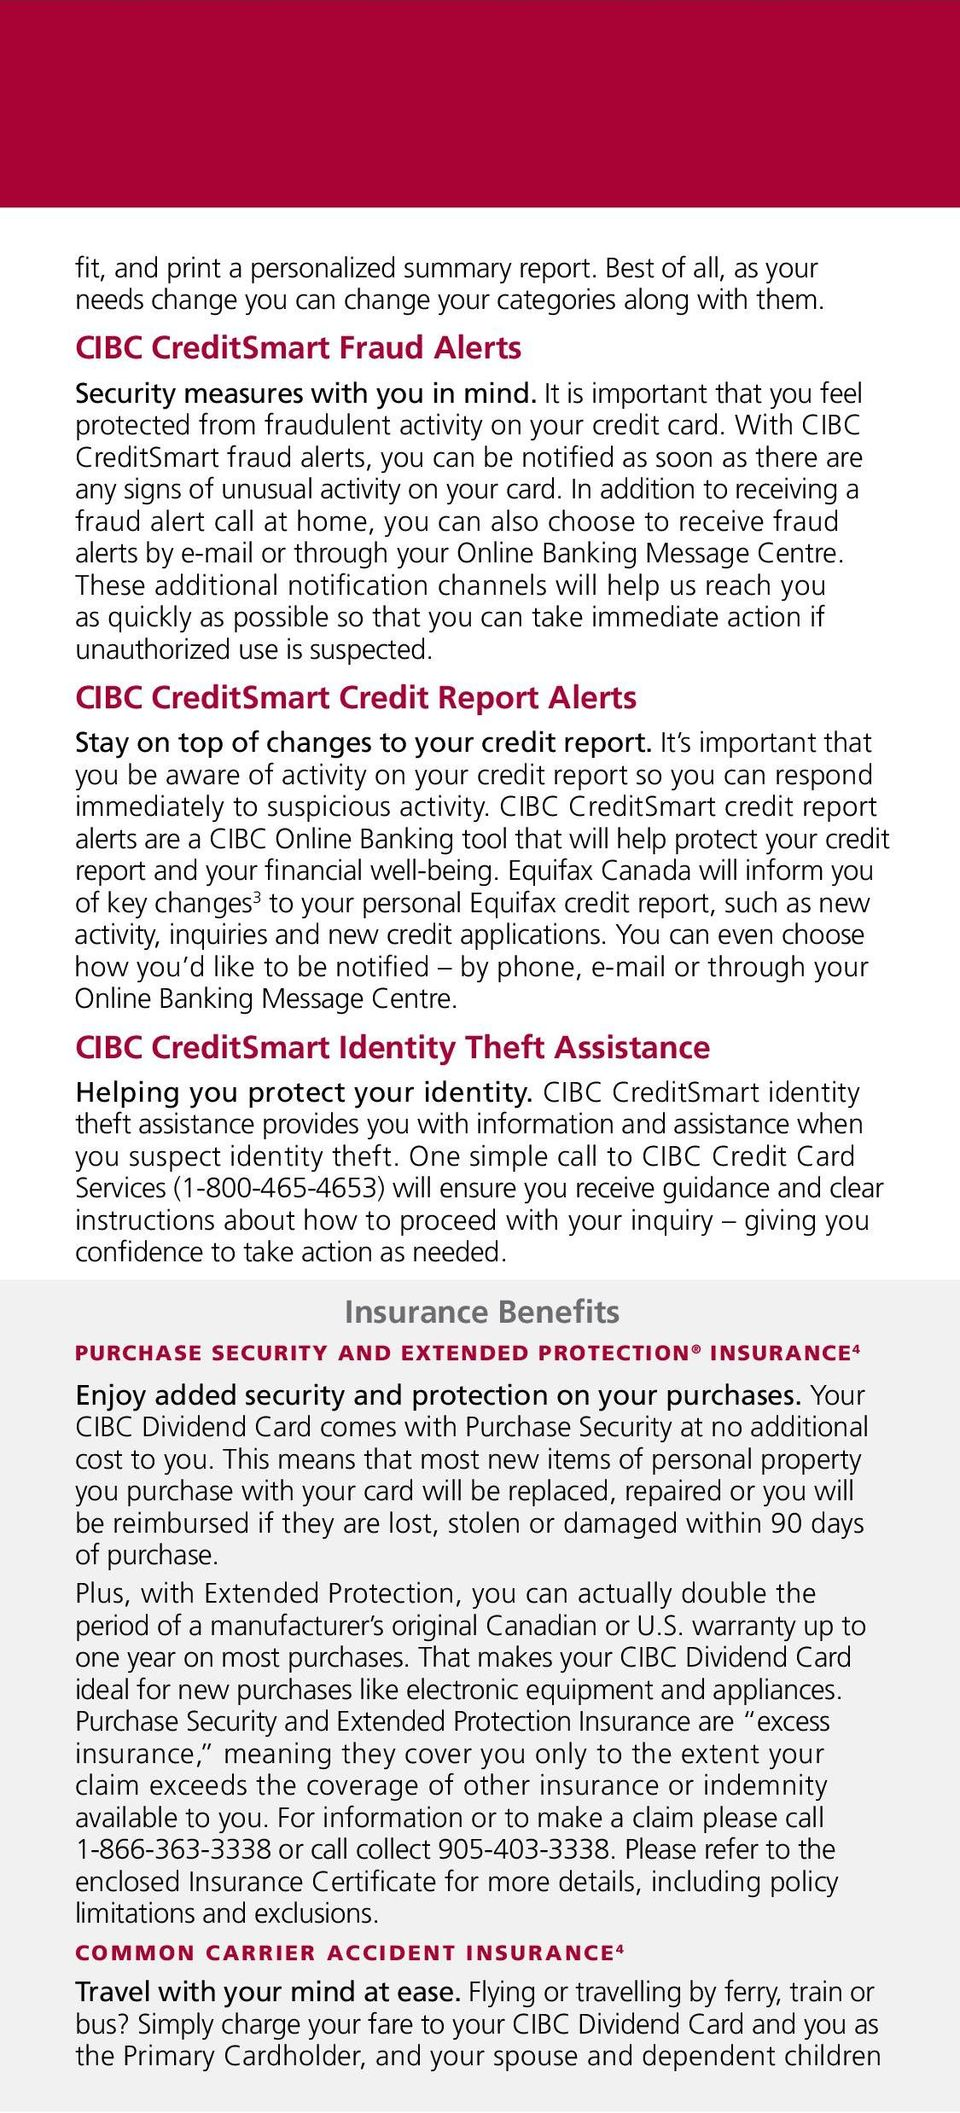 With CIBC CreditSmart fraud alerts, you can be notified as soon as there are any signs of unusual activity on your card.